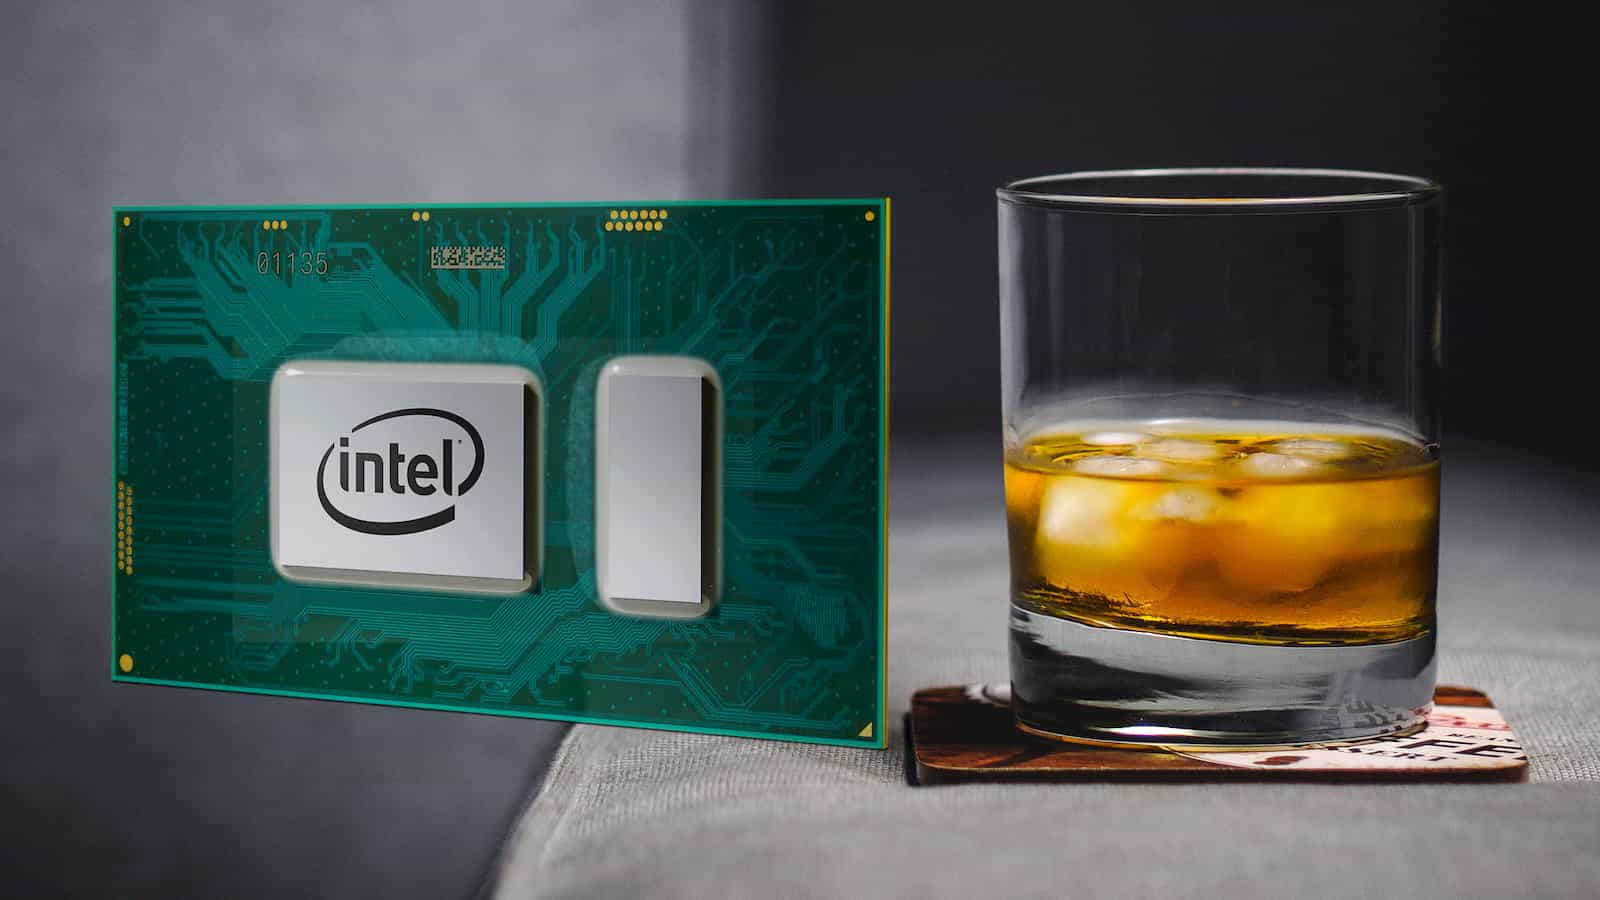 whiskey-lake-intel-procesor-1600